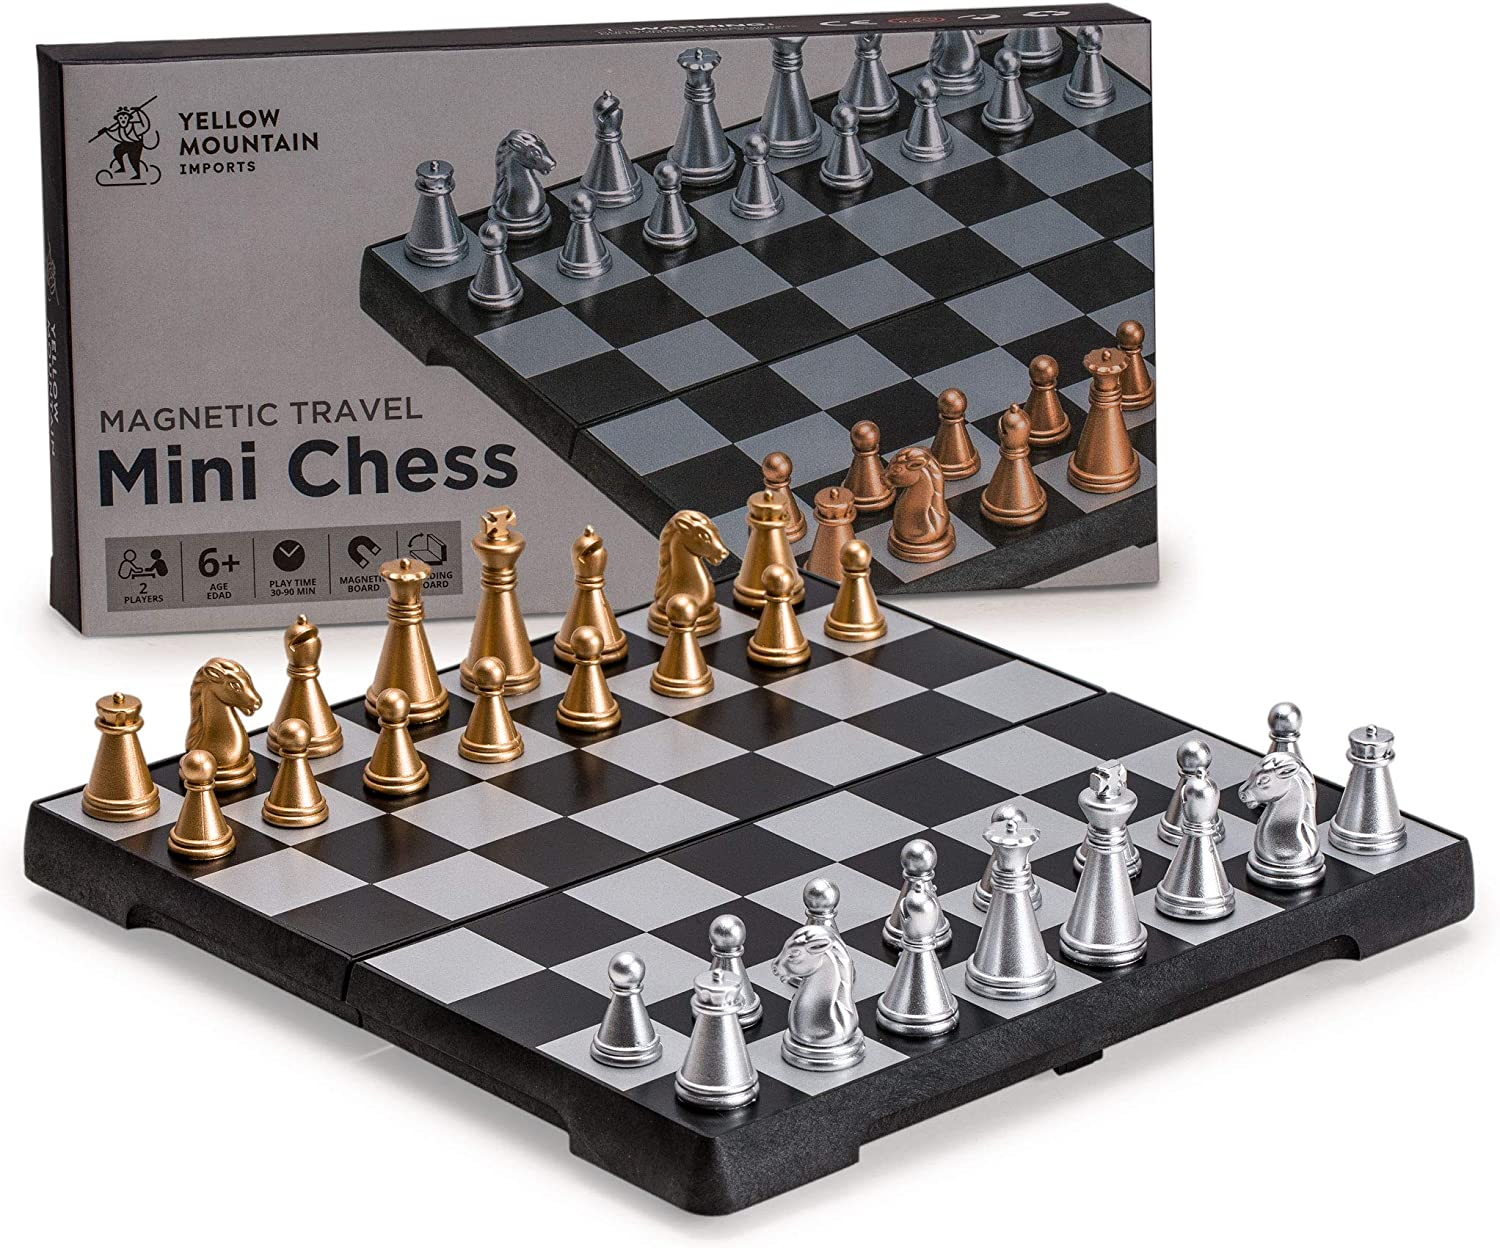 Yellow Mountain Imports Travel Magnetic Chess Mini-Set (6.3 Inches) - Compact, Folding, Educational Board Game